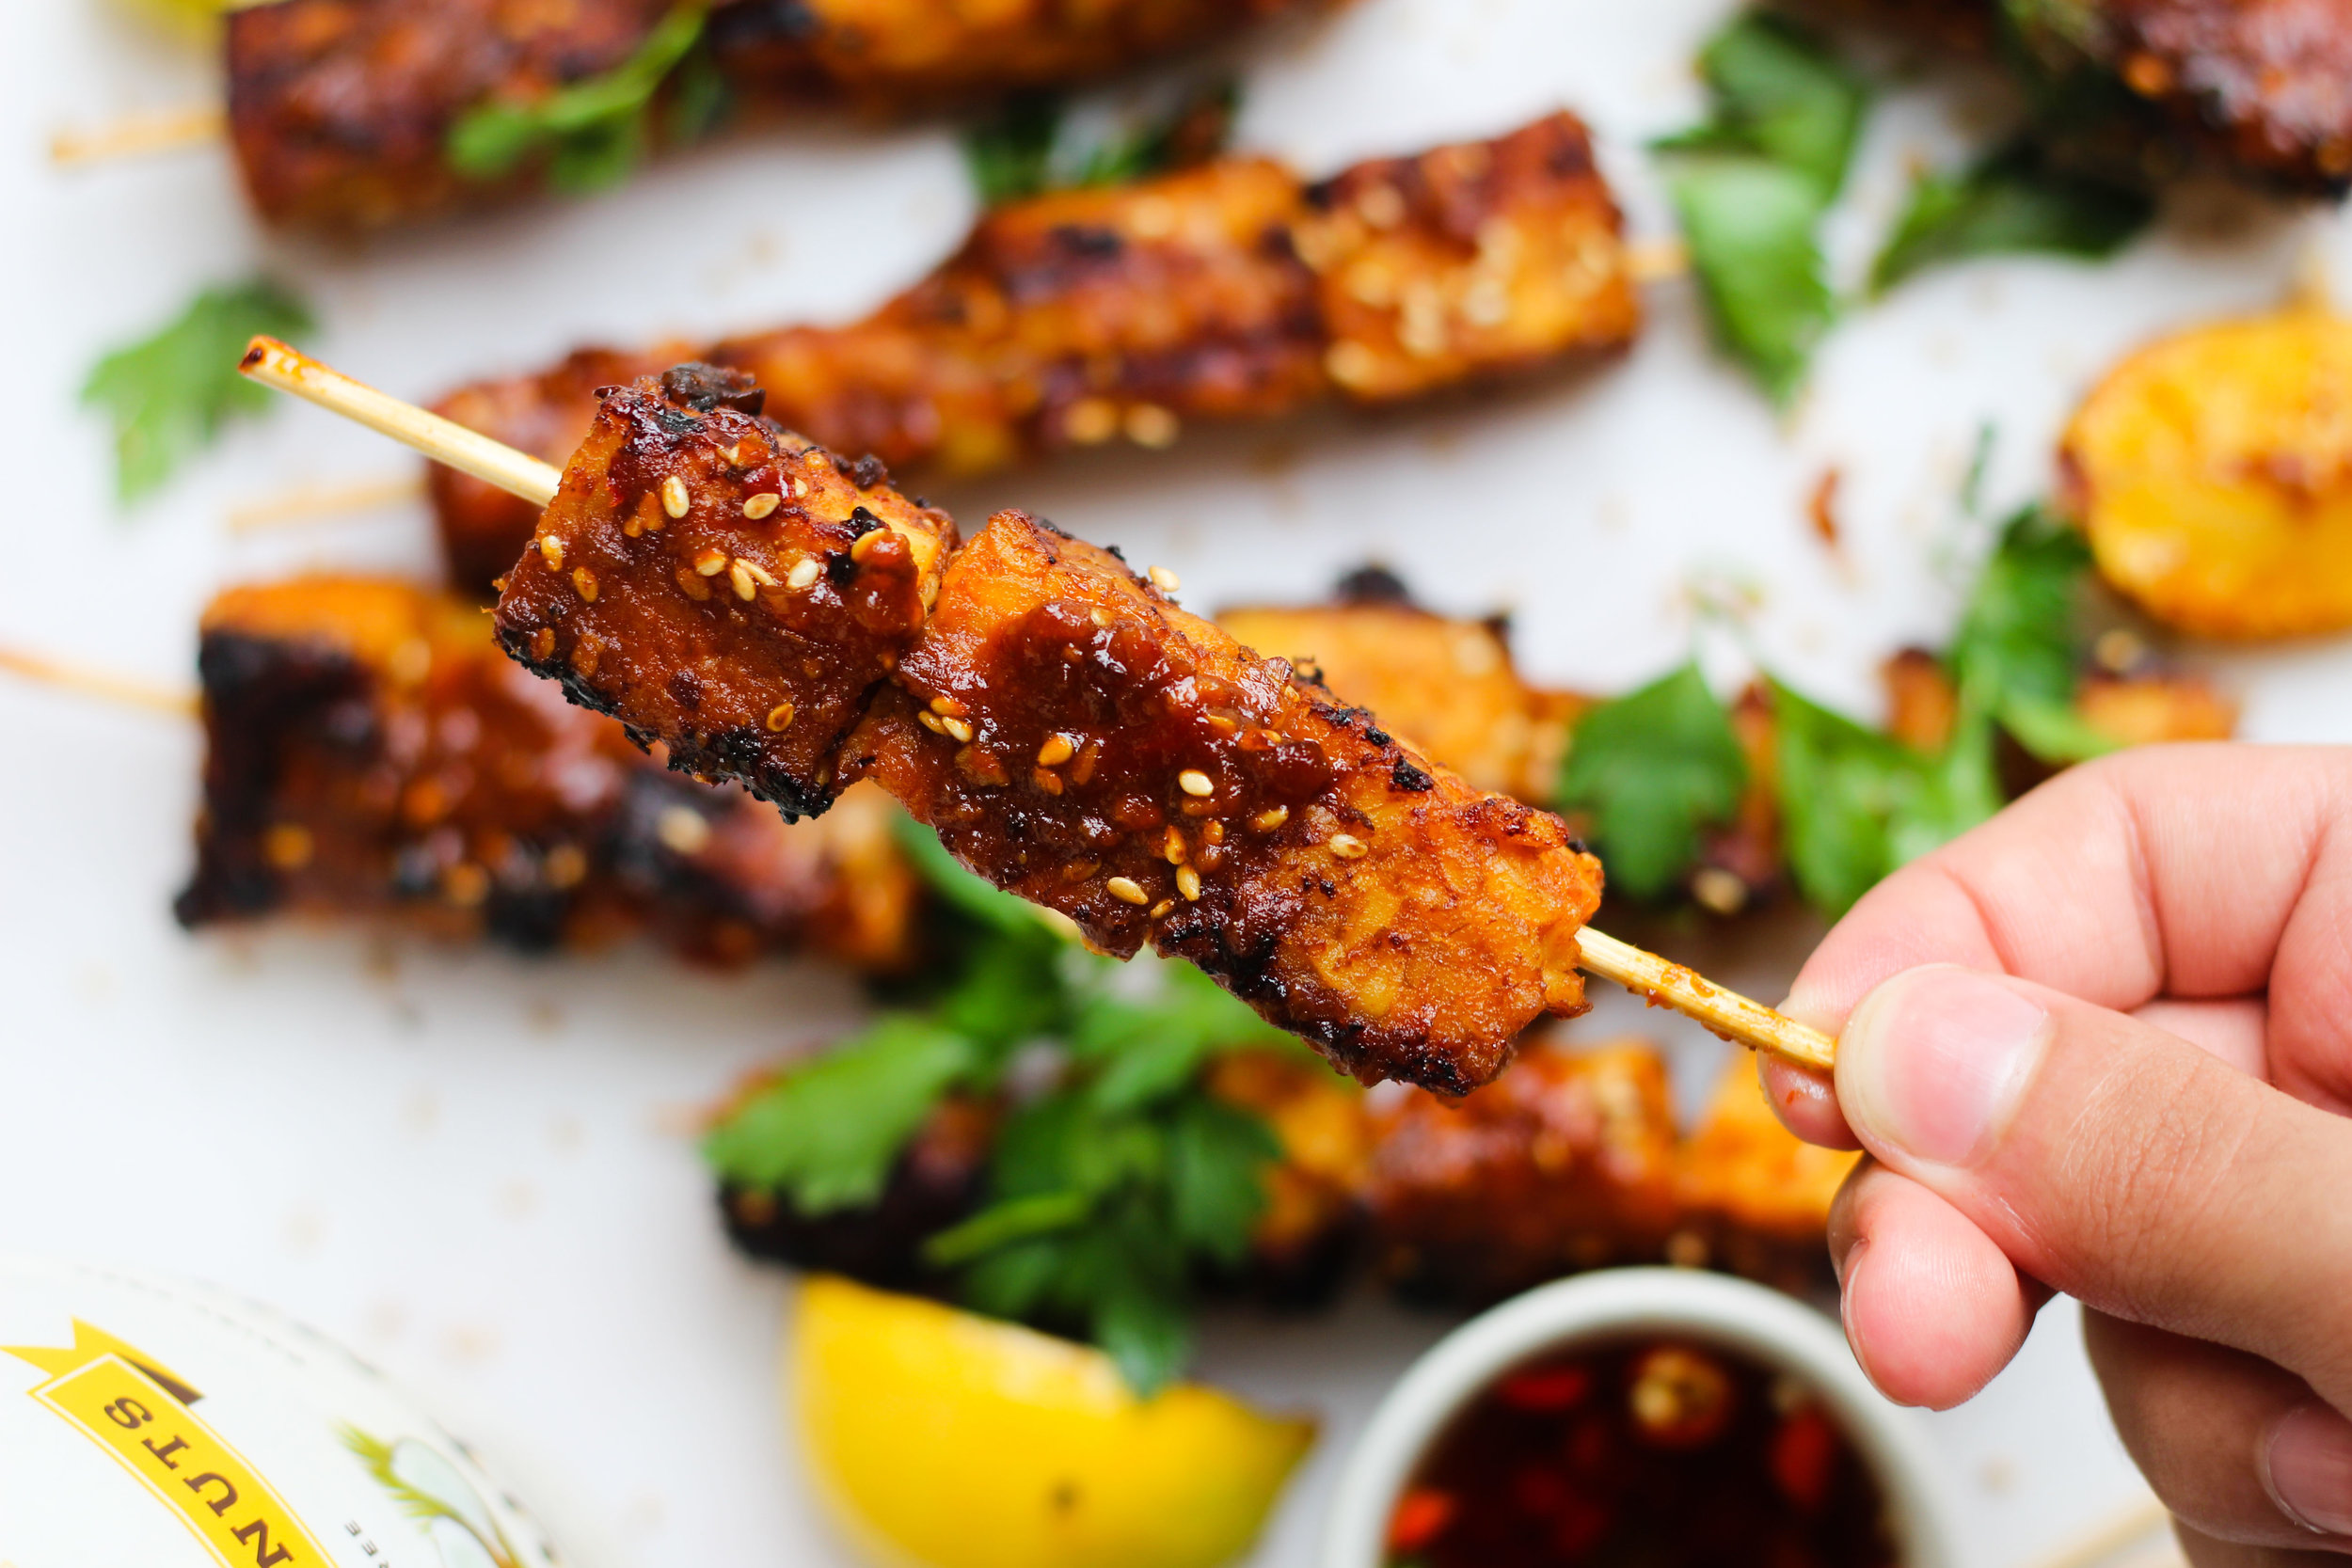 Spicy Coconut Marinated Tempeh Skewers With Chili Sauce